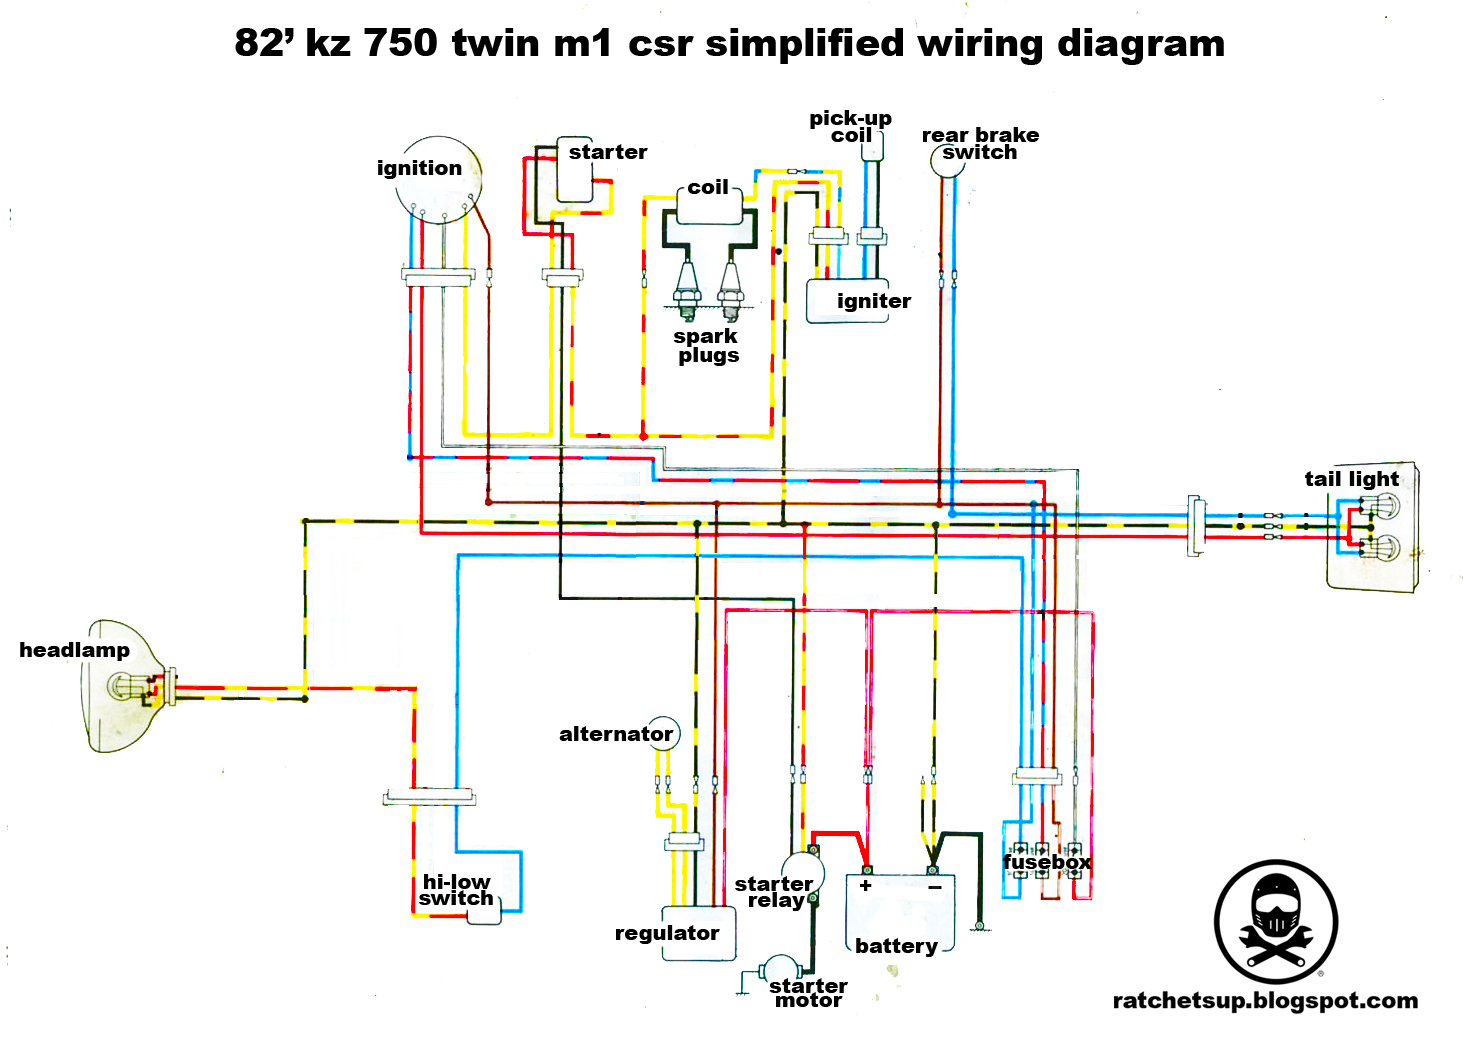 kz750+simple+diagram kz400 wiring diagram 1983 kawasaki motorcycle wiring diagrams  at crackthecode.co